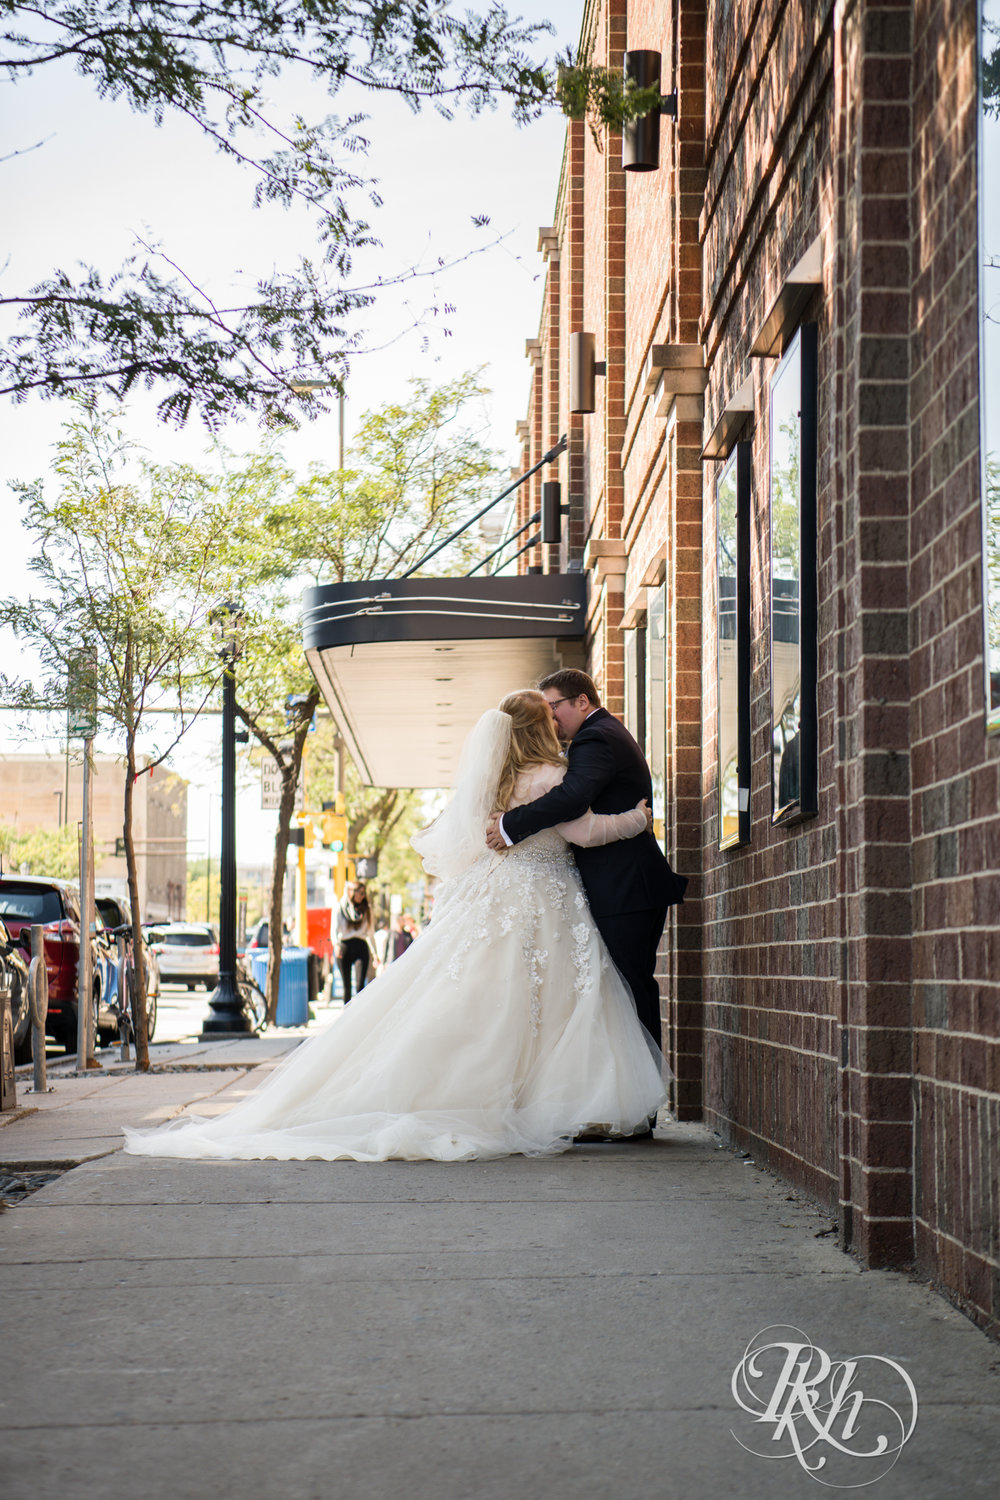 Cameron & Jesse - Minnesota Wedding Photography - Mansion at Uptown - RKH Images - Blog (18 of 65).jpg